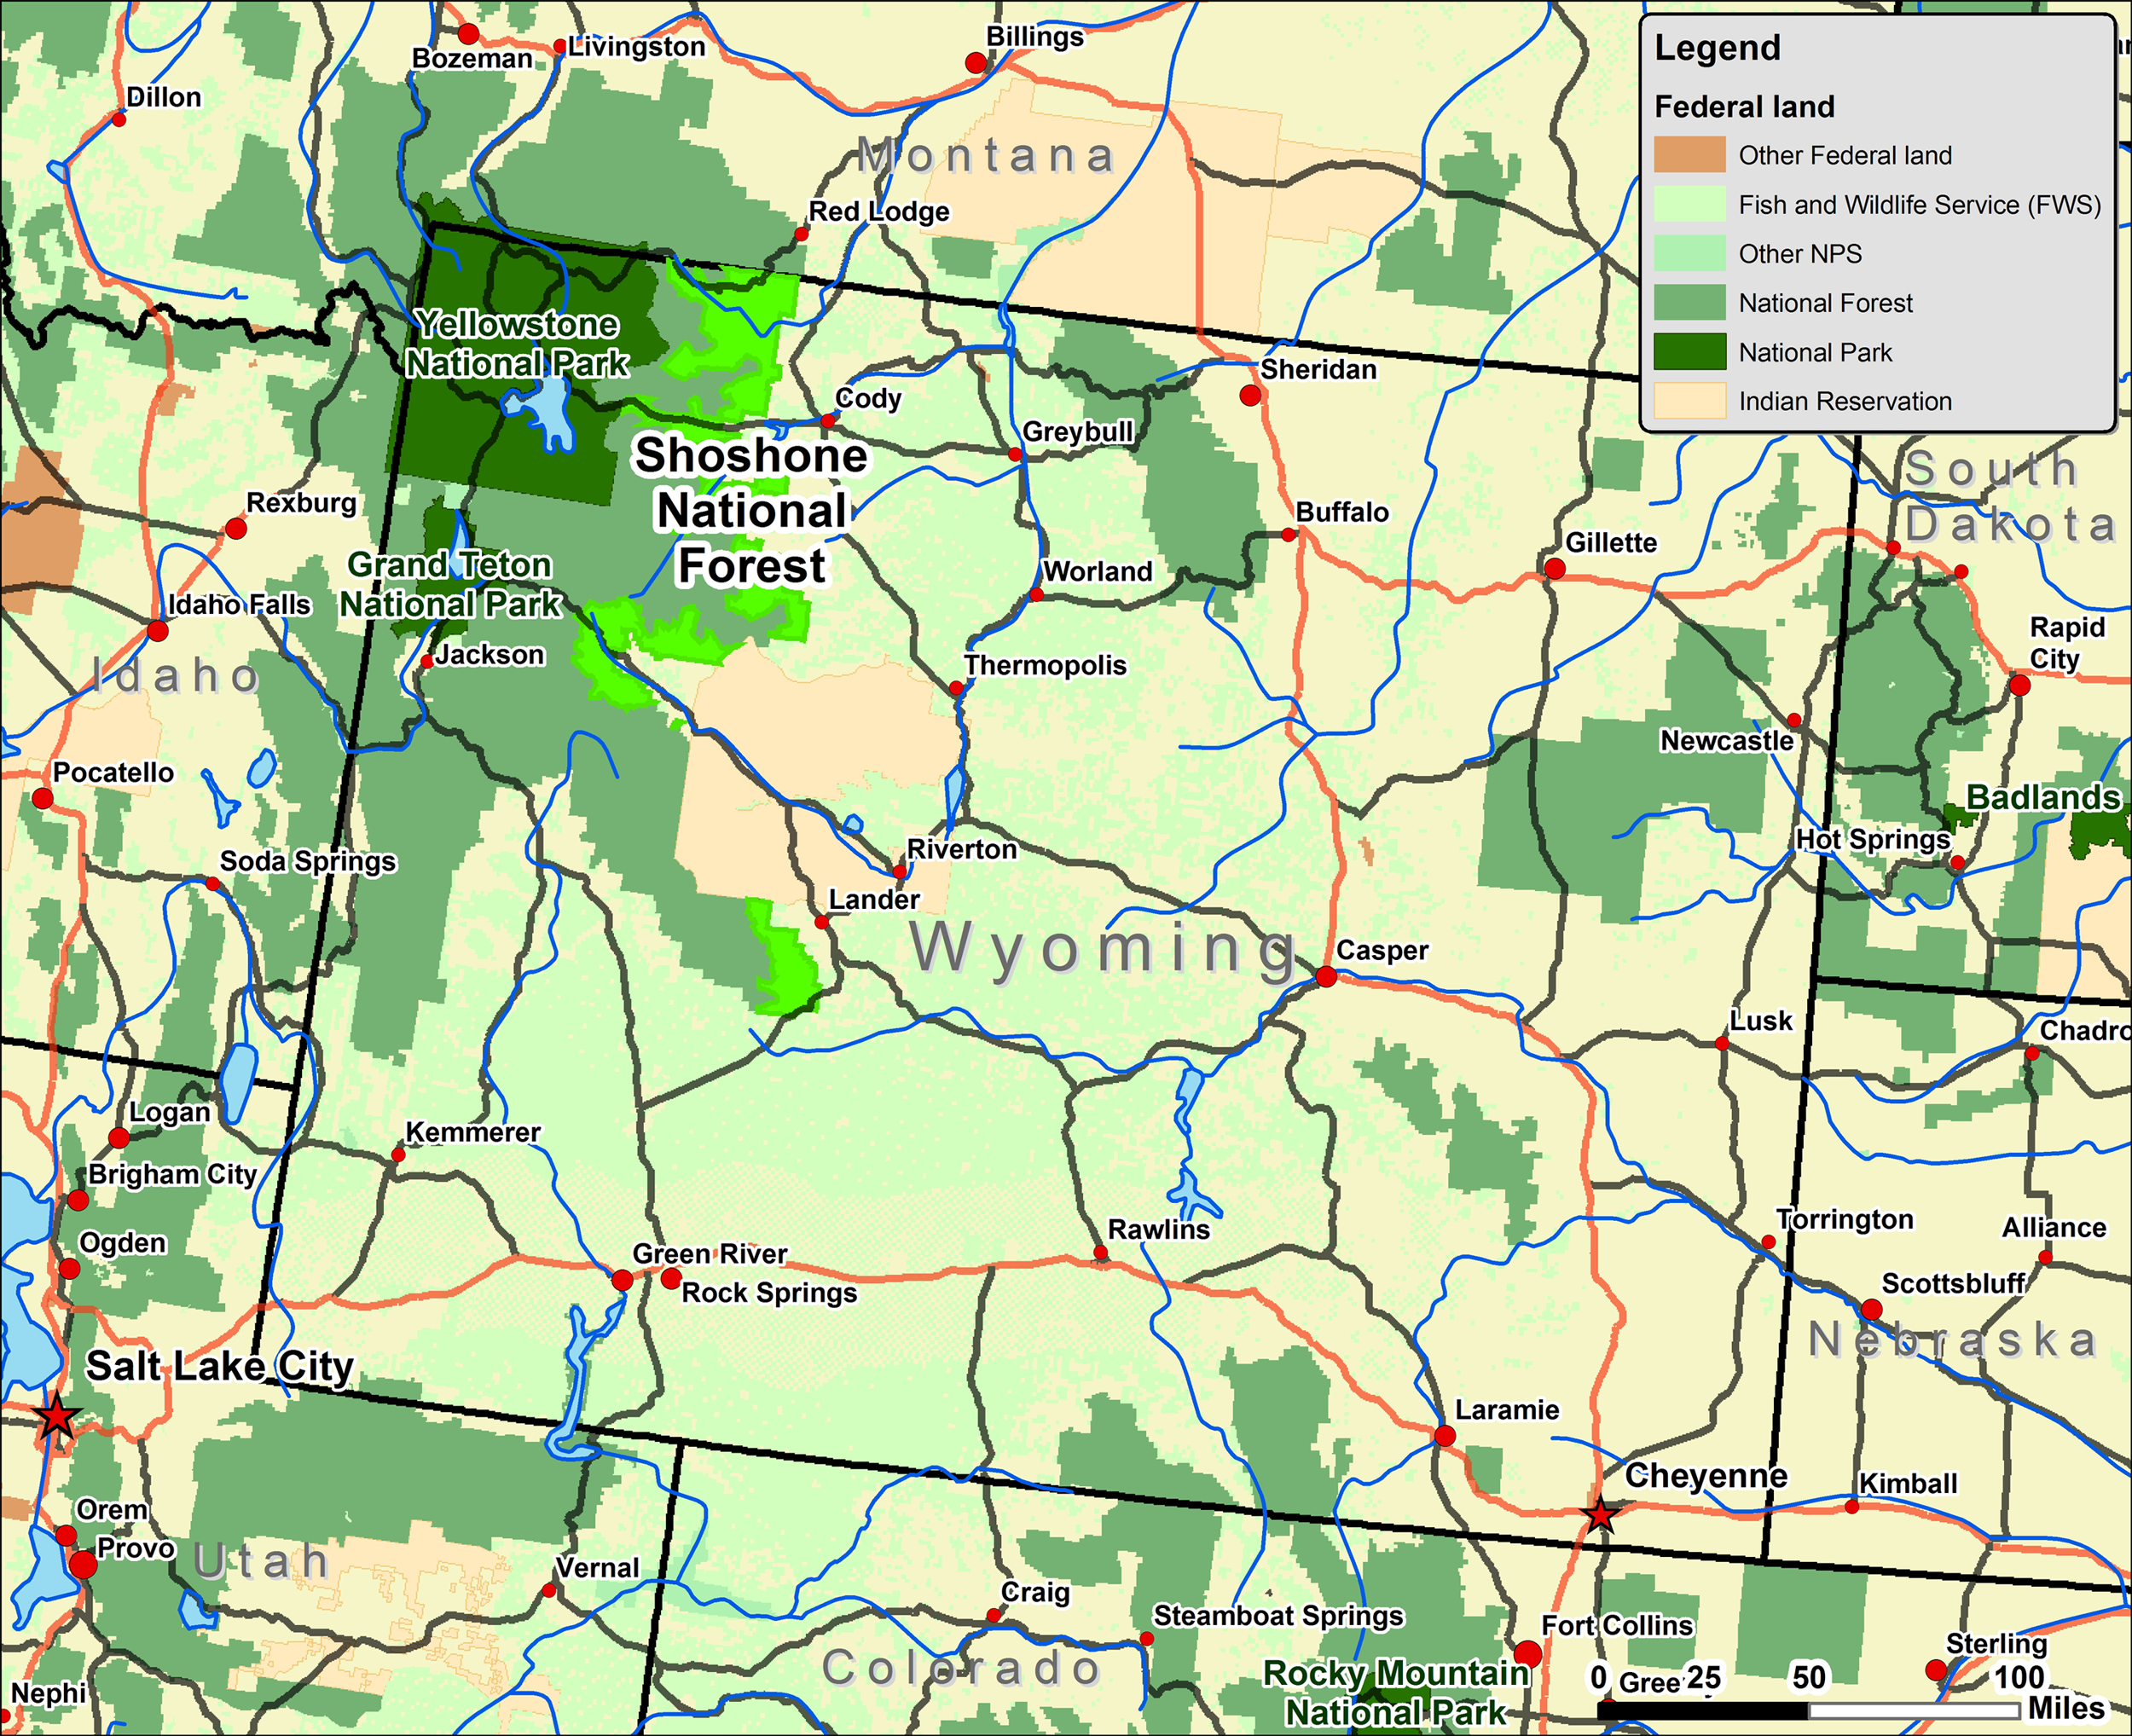 File:Shoshone wy map.png - Wikimedia Commons